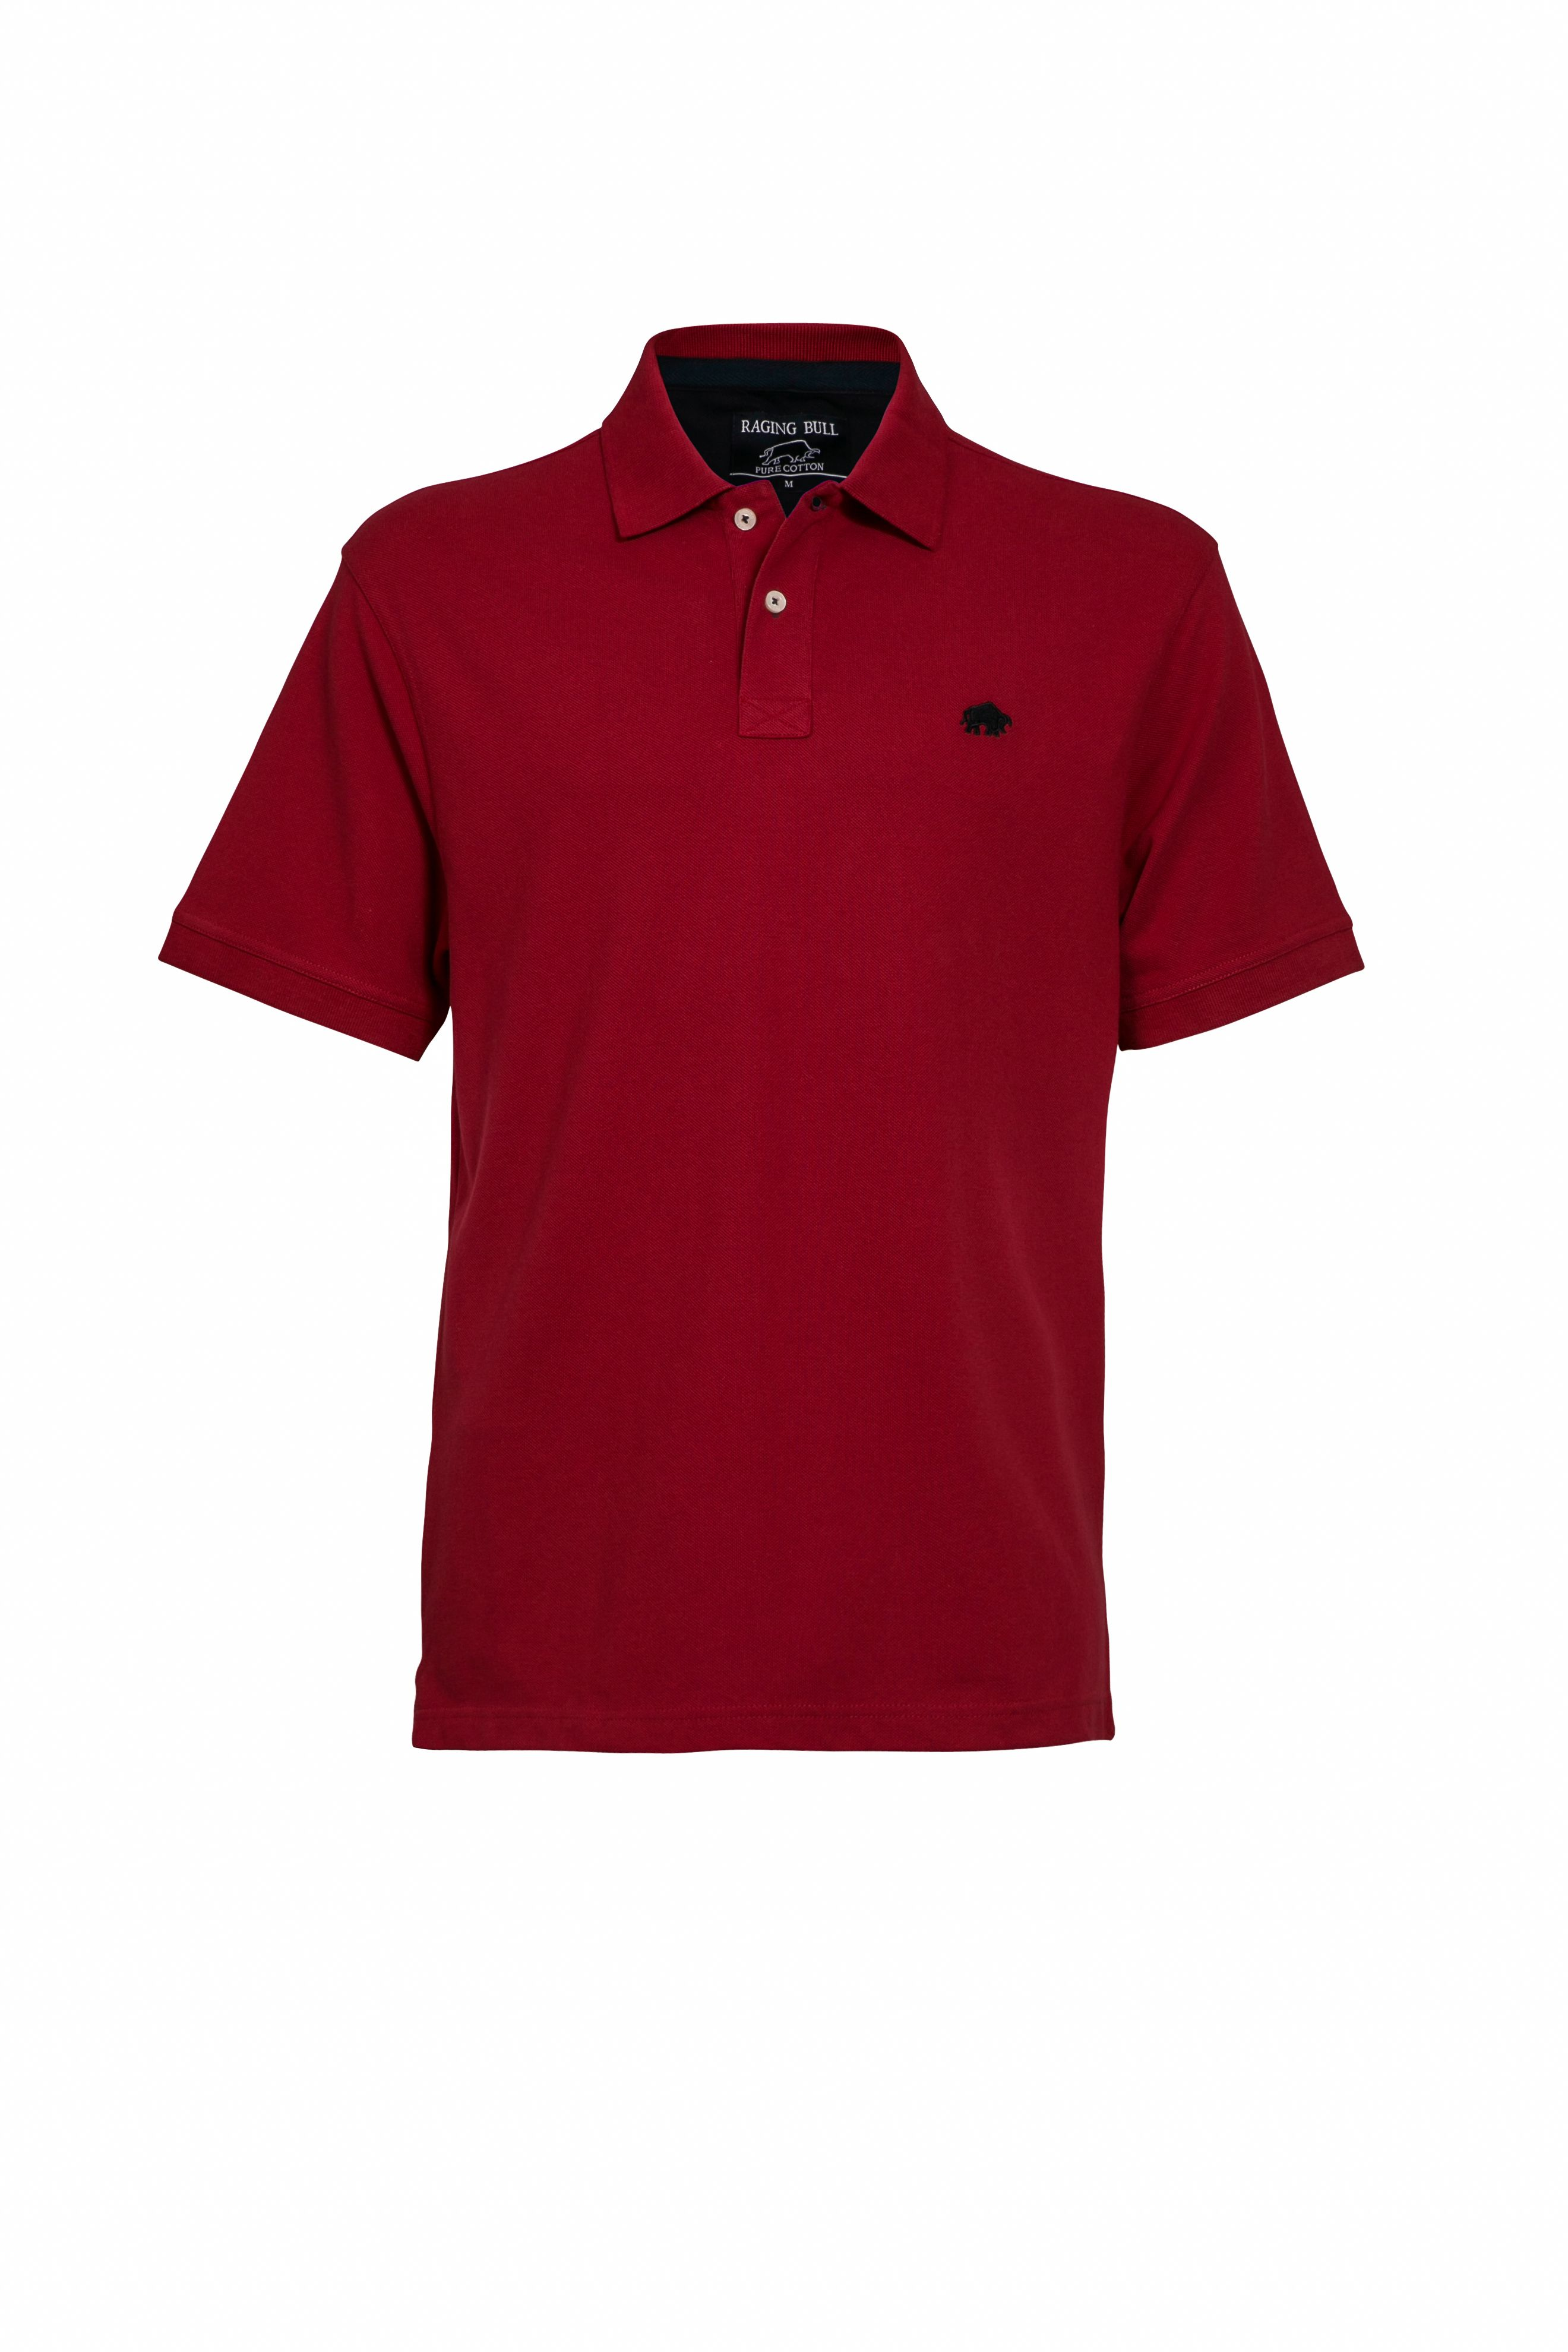 Men's Raging Bull New Signature Polo Shirt, Red